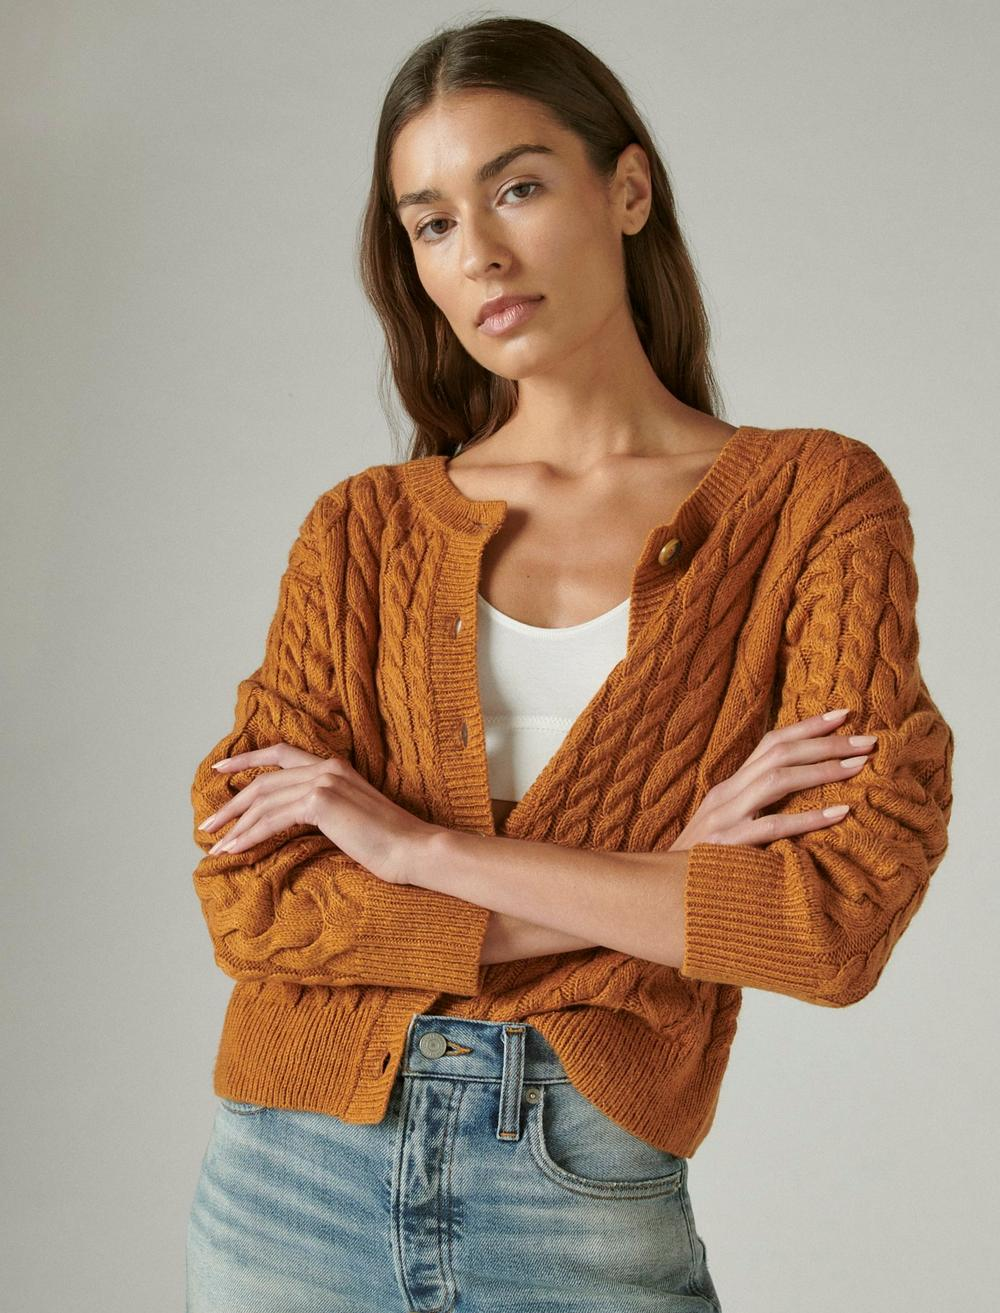 CABLE CARDIGAN TOP, image 1